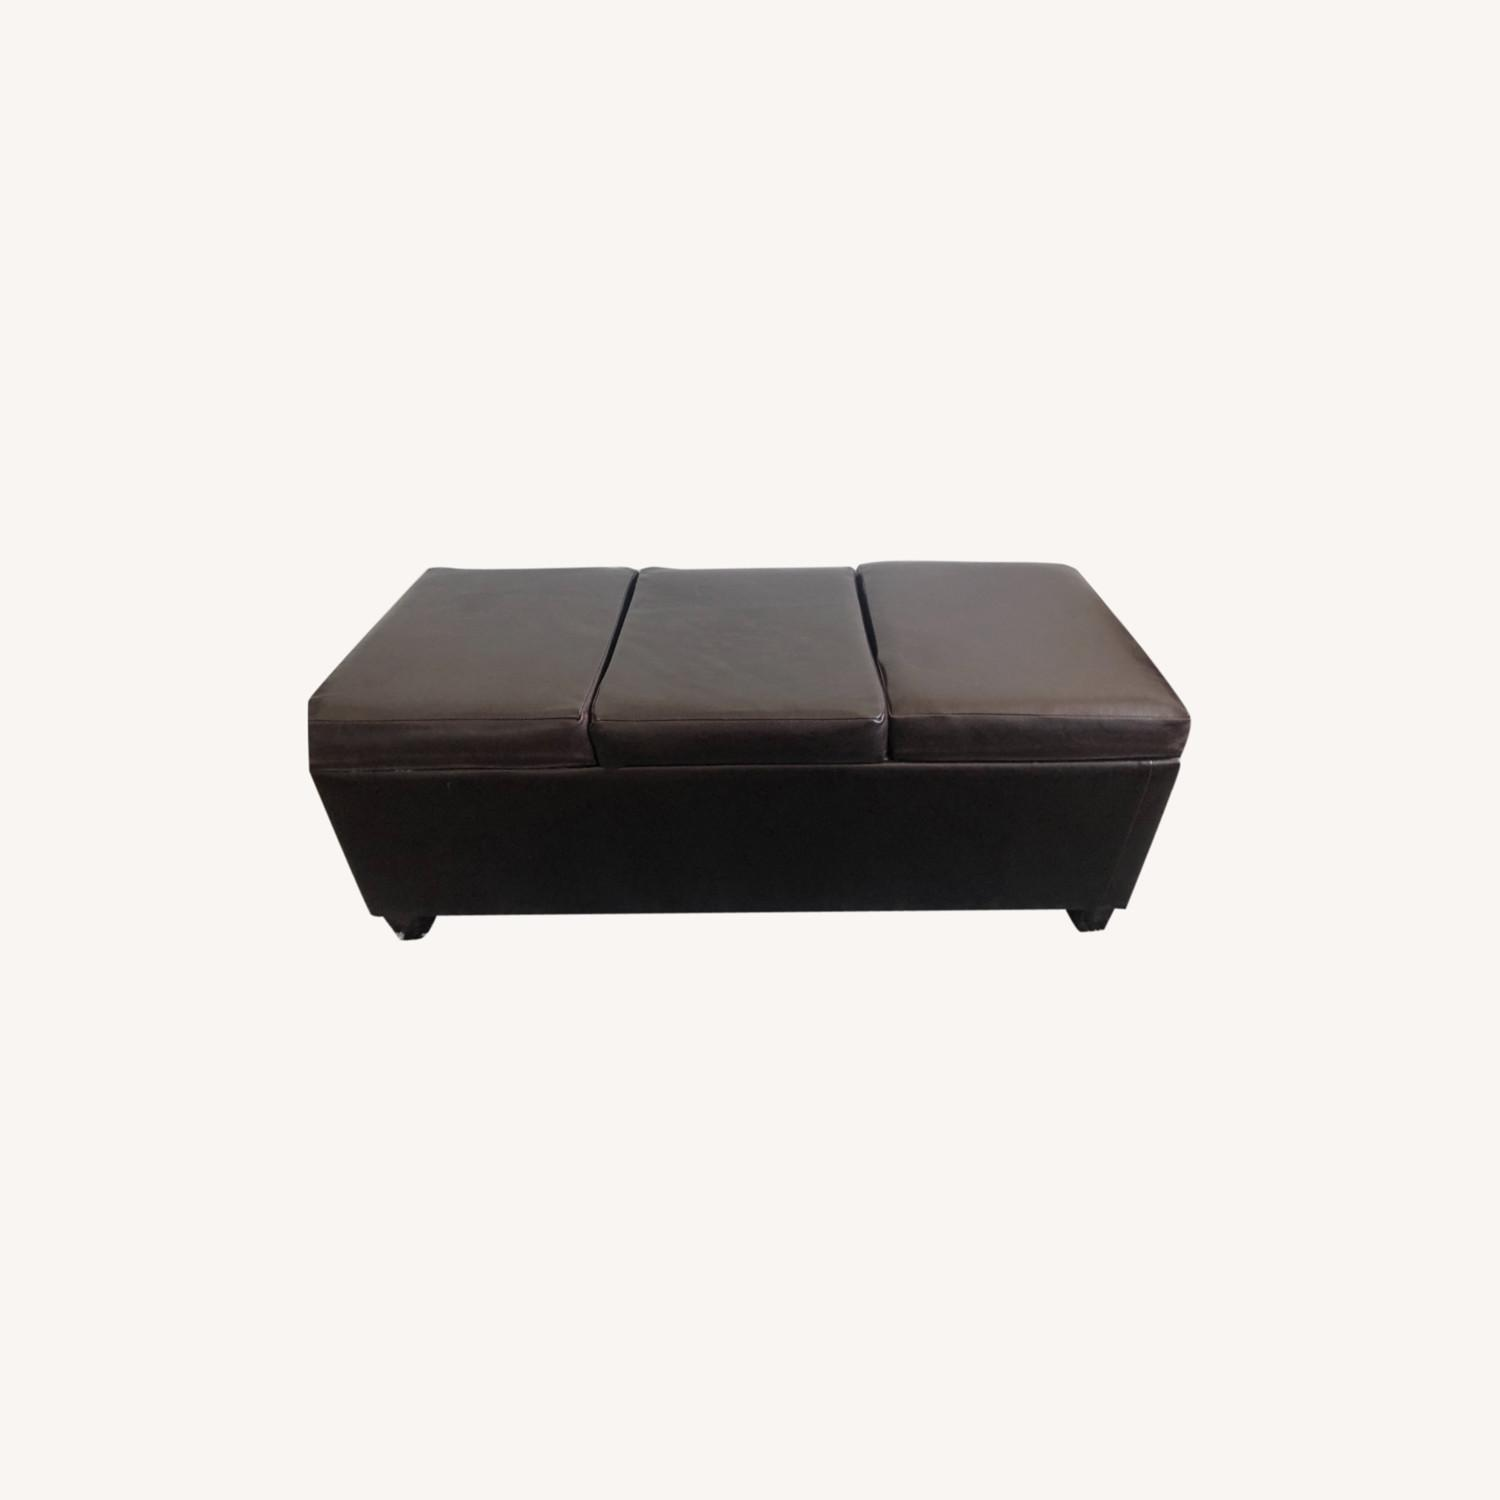 Brown Leather Coffee Table with Storage - image-0